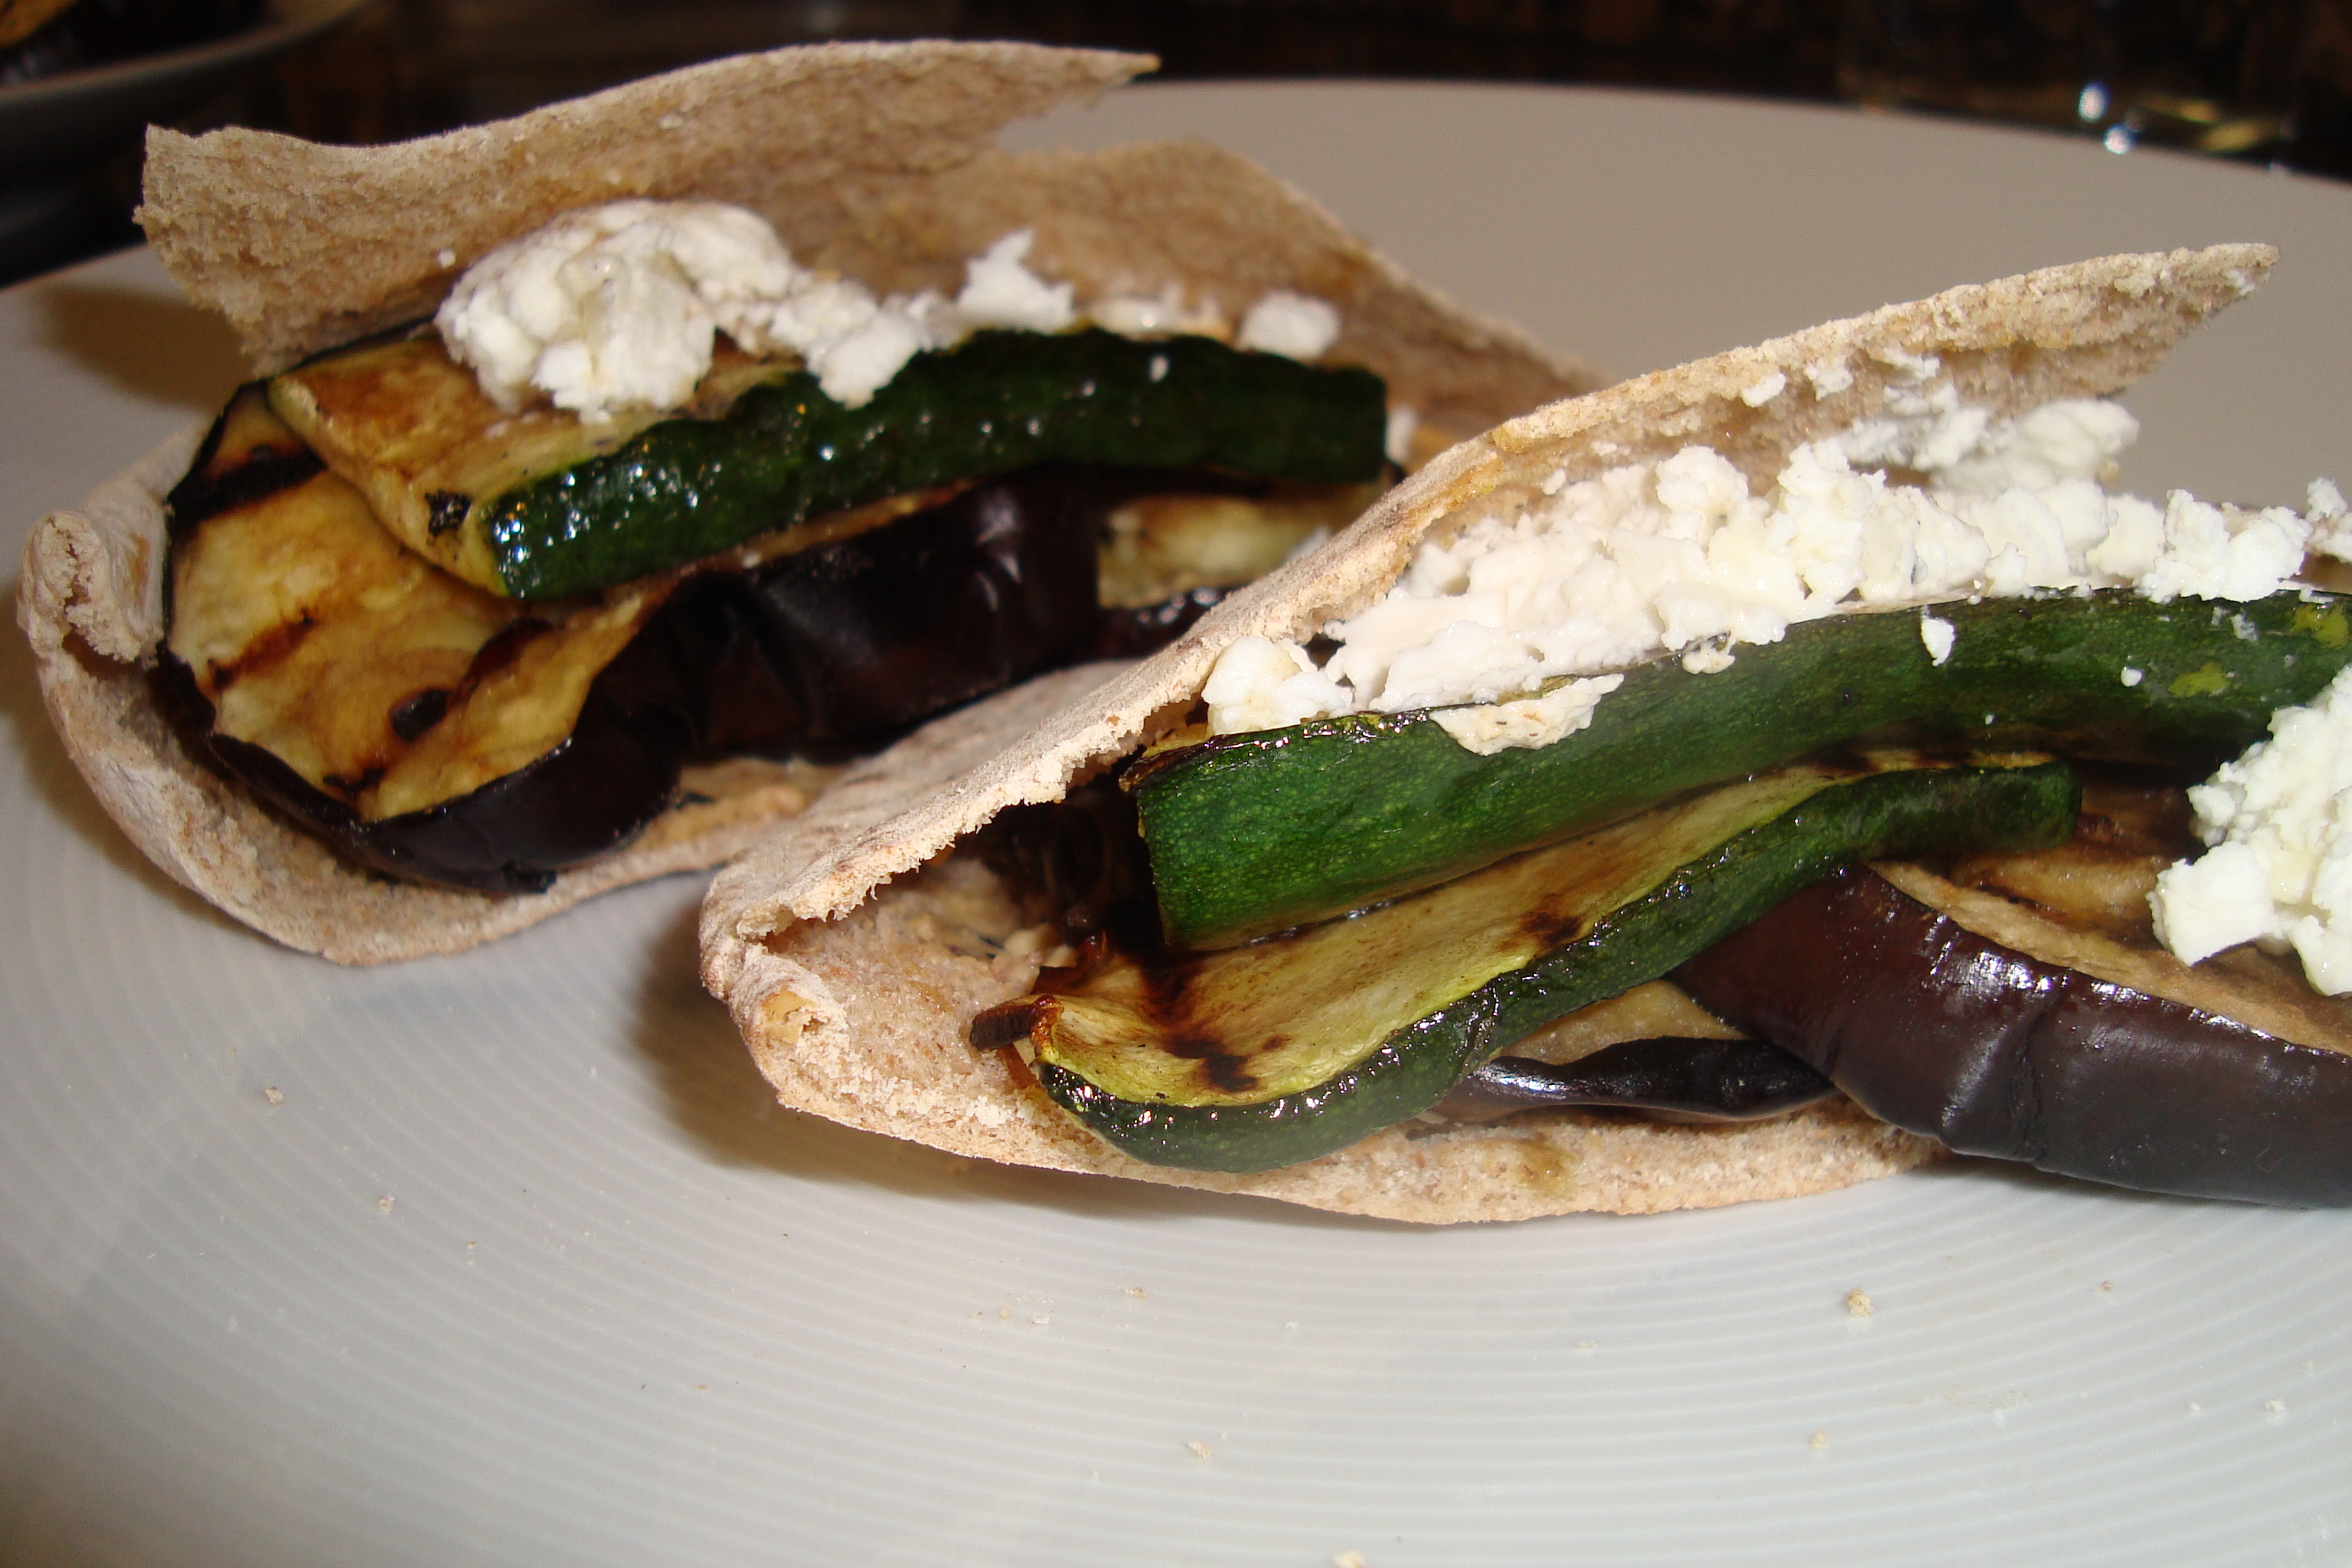 Grilled vegetable sandwiches with hummus and goat cheese ...